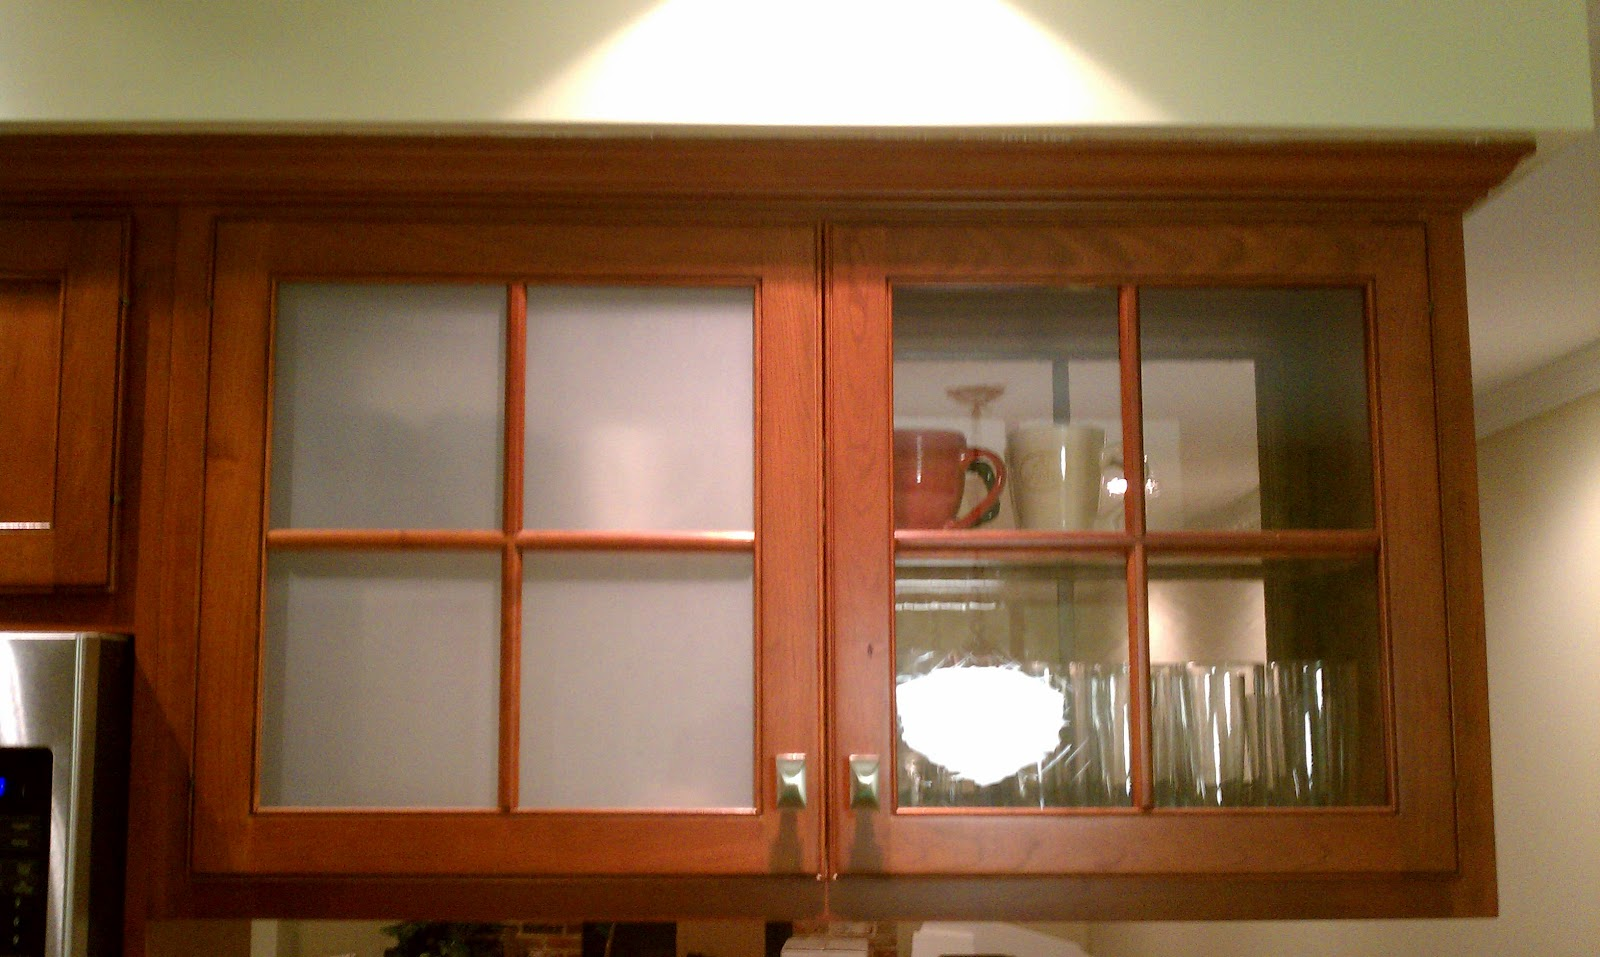 For all things creative diy frosted glass window film for All glass kitchen cabinets